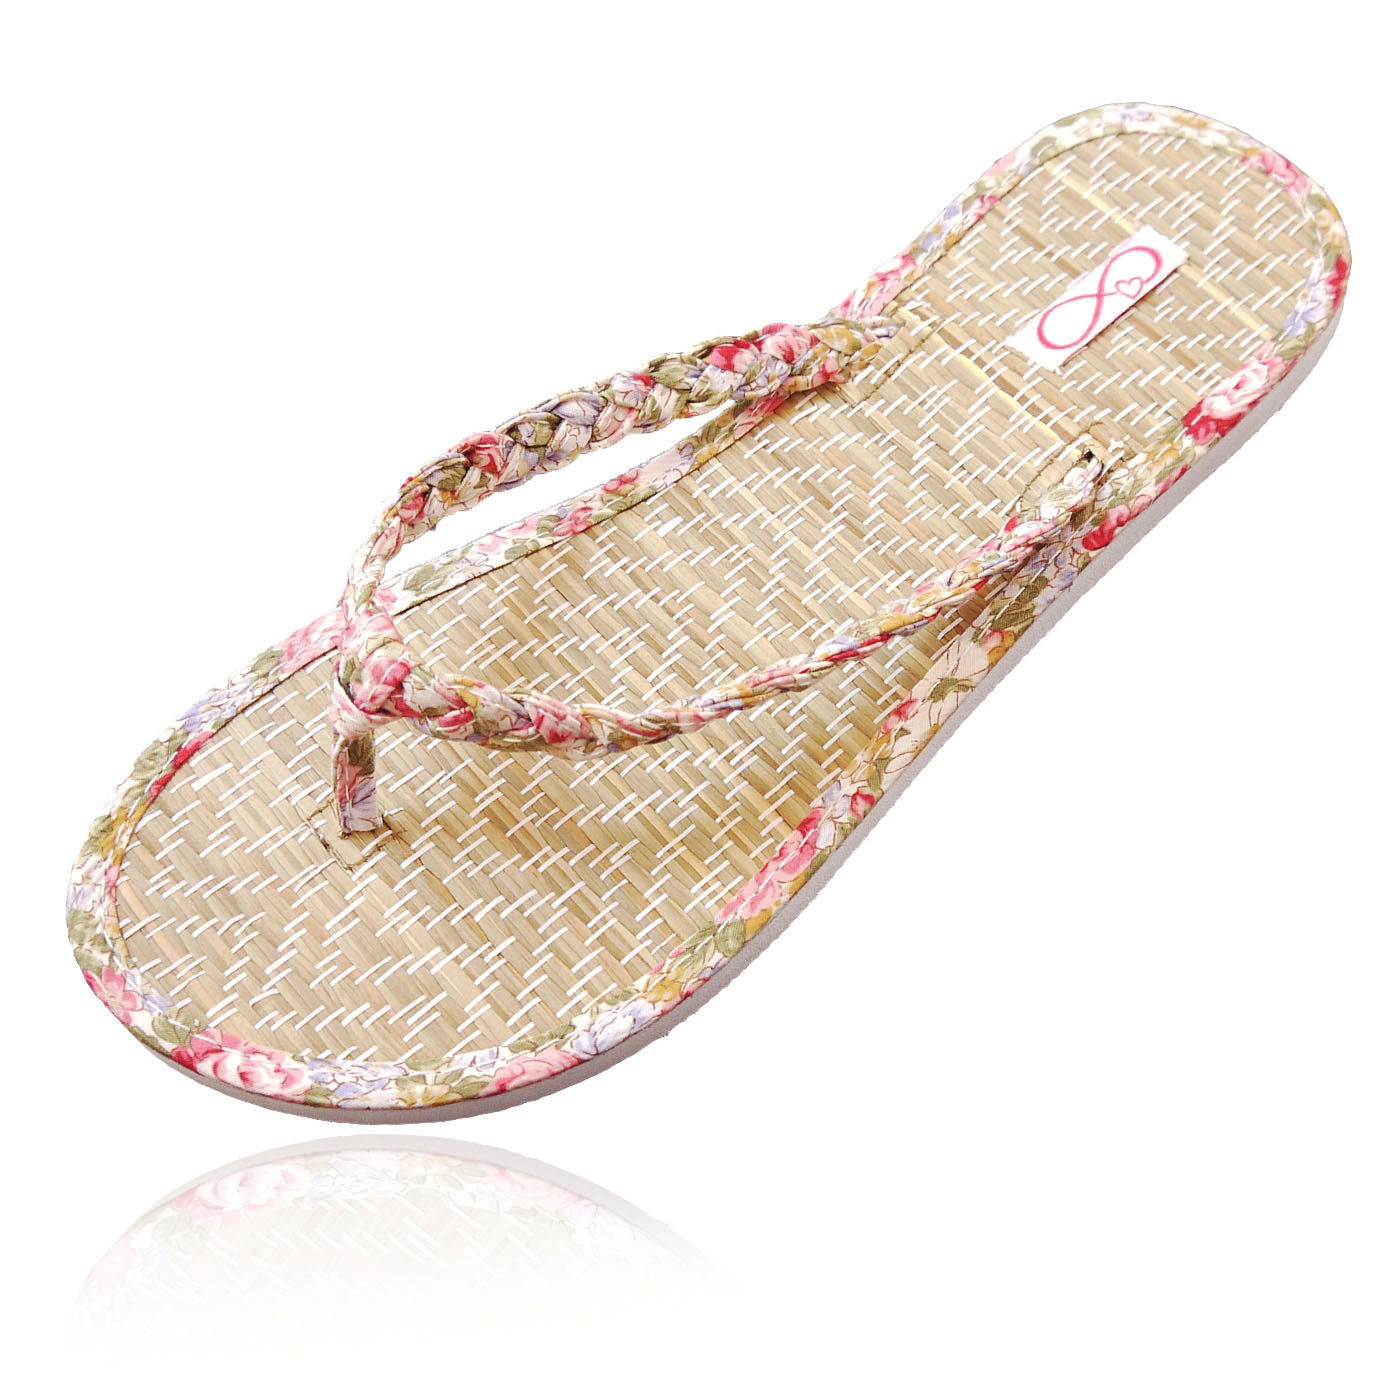 10 Pairs of pink beach flip-flops in a Party box